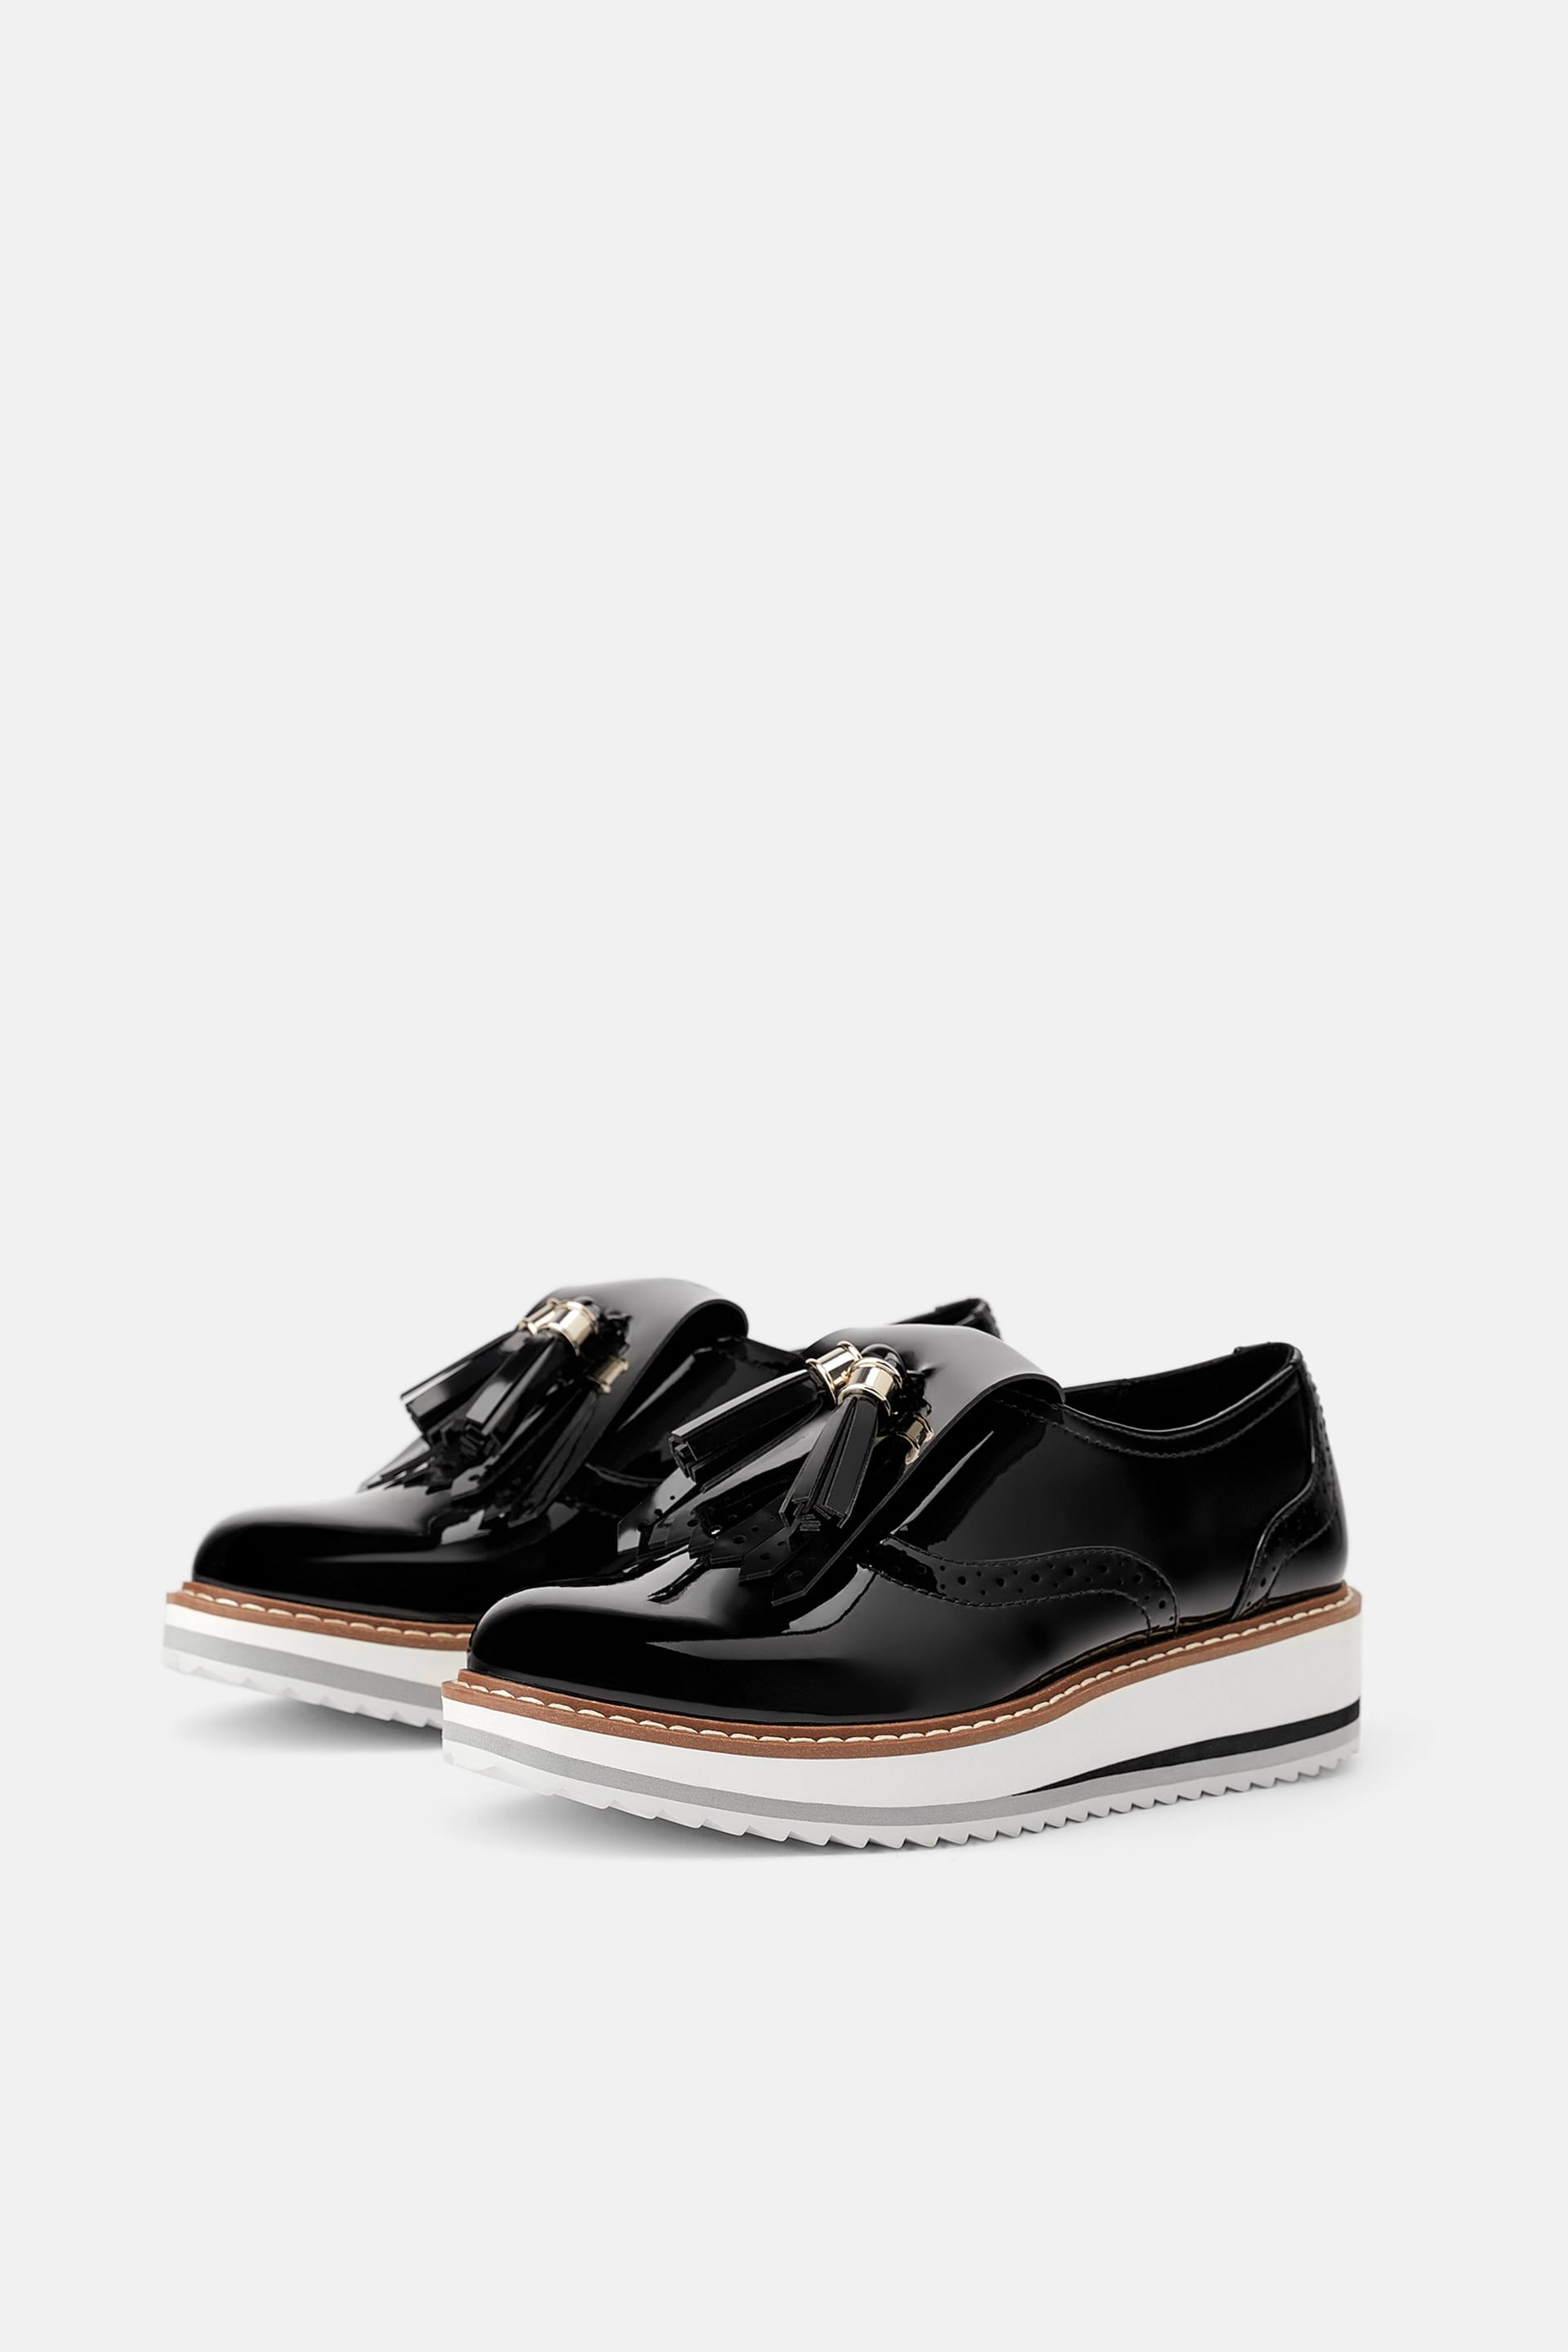 718433c82 Patent finish platform derby shoes in 2019 | bUY tHIS! | Derby shoes ...